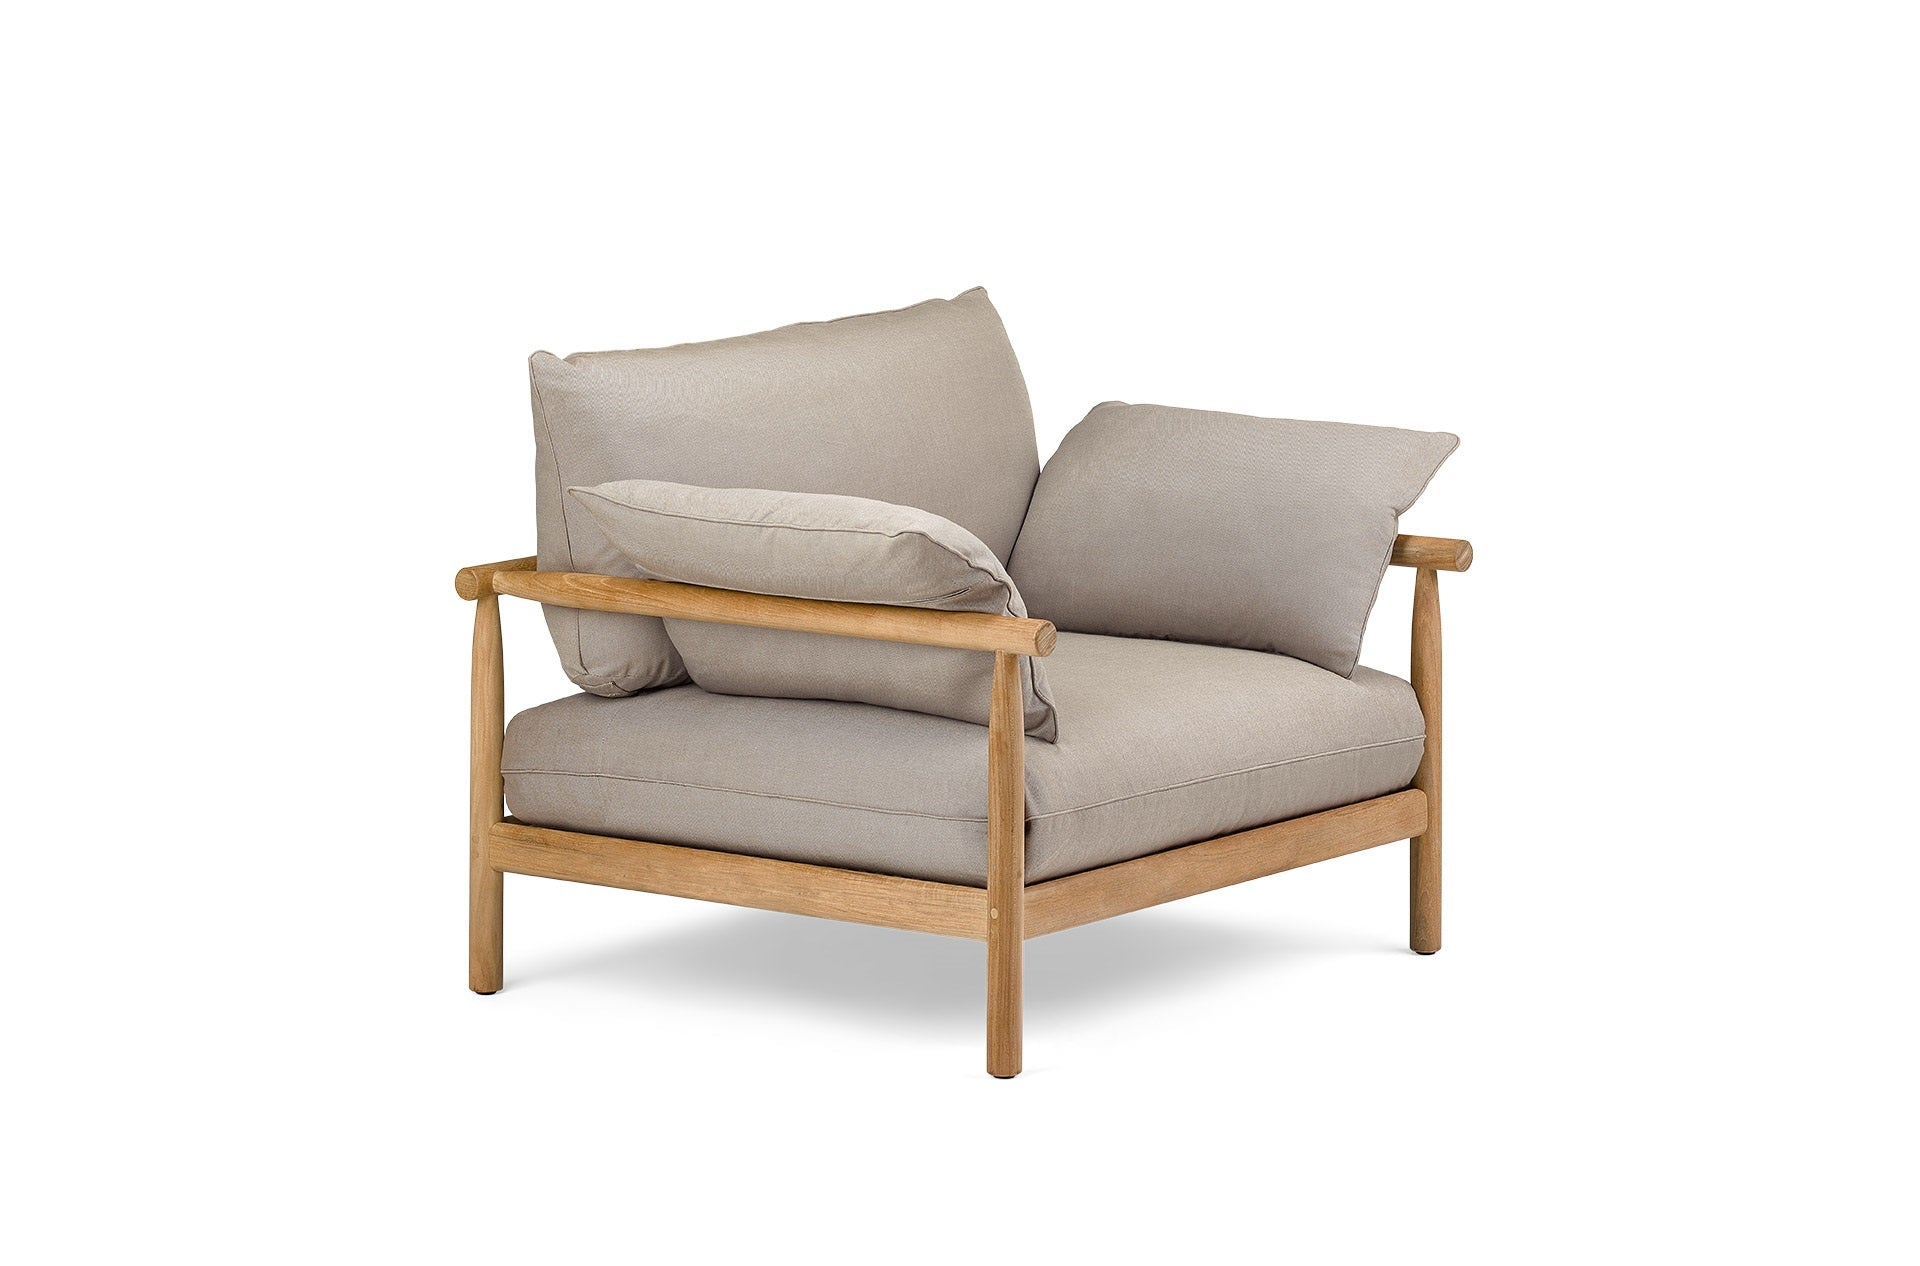 TIBBO LOUNGE CHAIR XL By Dedon, Available At The Home Resource Furniture  Store Sarasota Florida